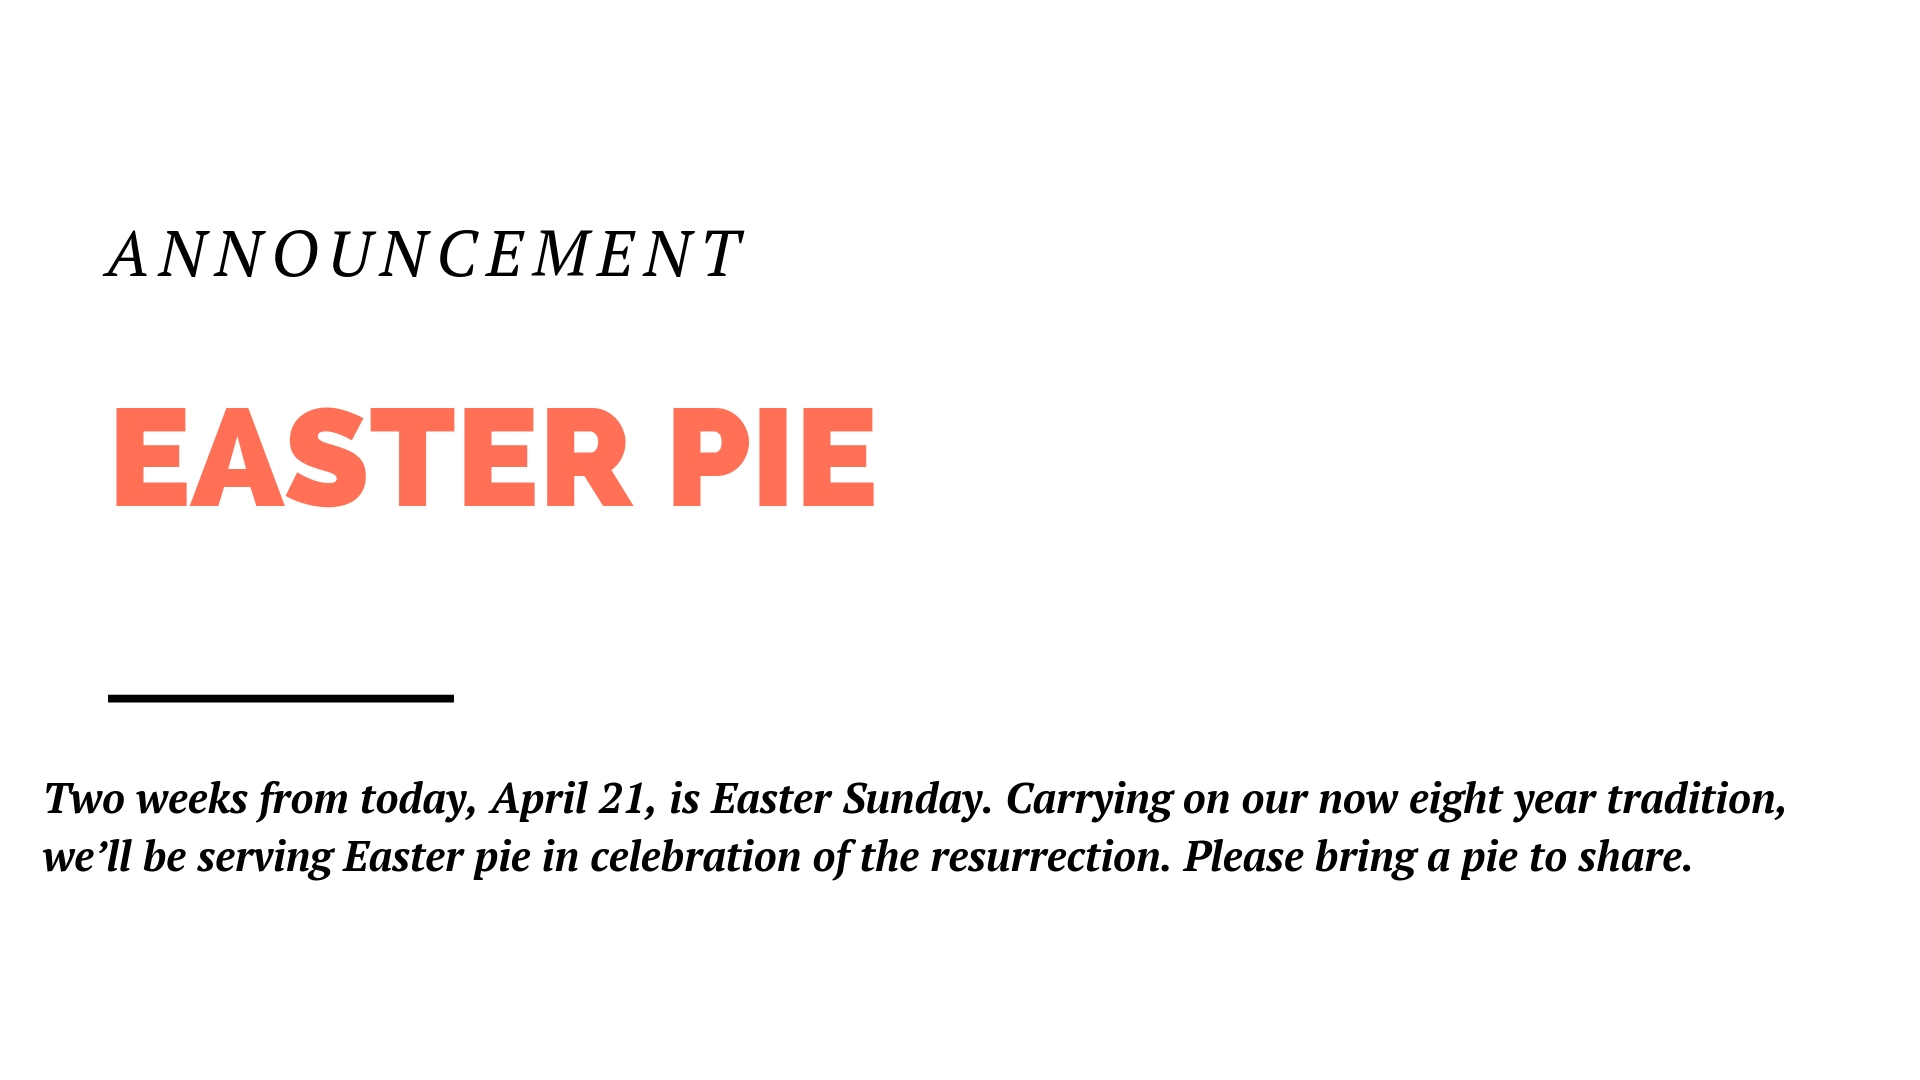 And then, of course, one week from today, April 21, is Easter Sunday. And carrying on our now eight year tradition, we'll be serving Easter pie in celebration of the resurrection. So what we need from you is to bring a pie. A homemade pie, a store bought pie, it's your call.